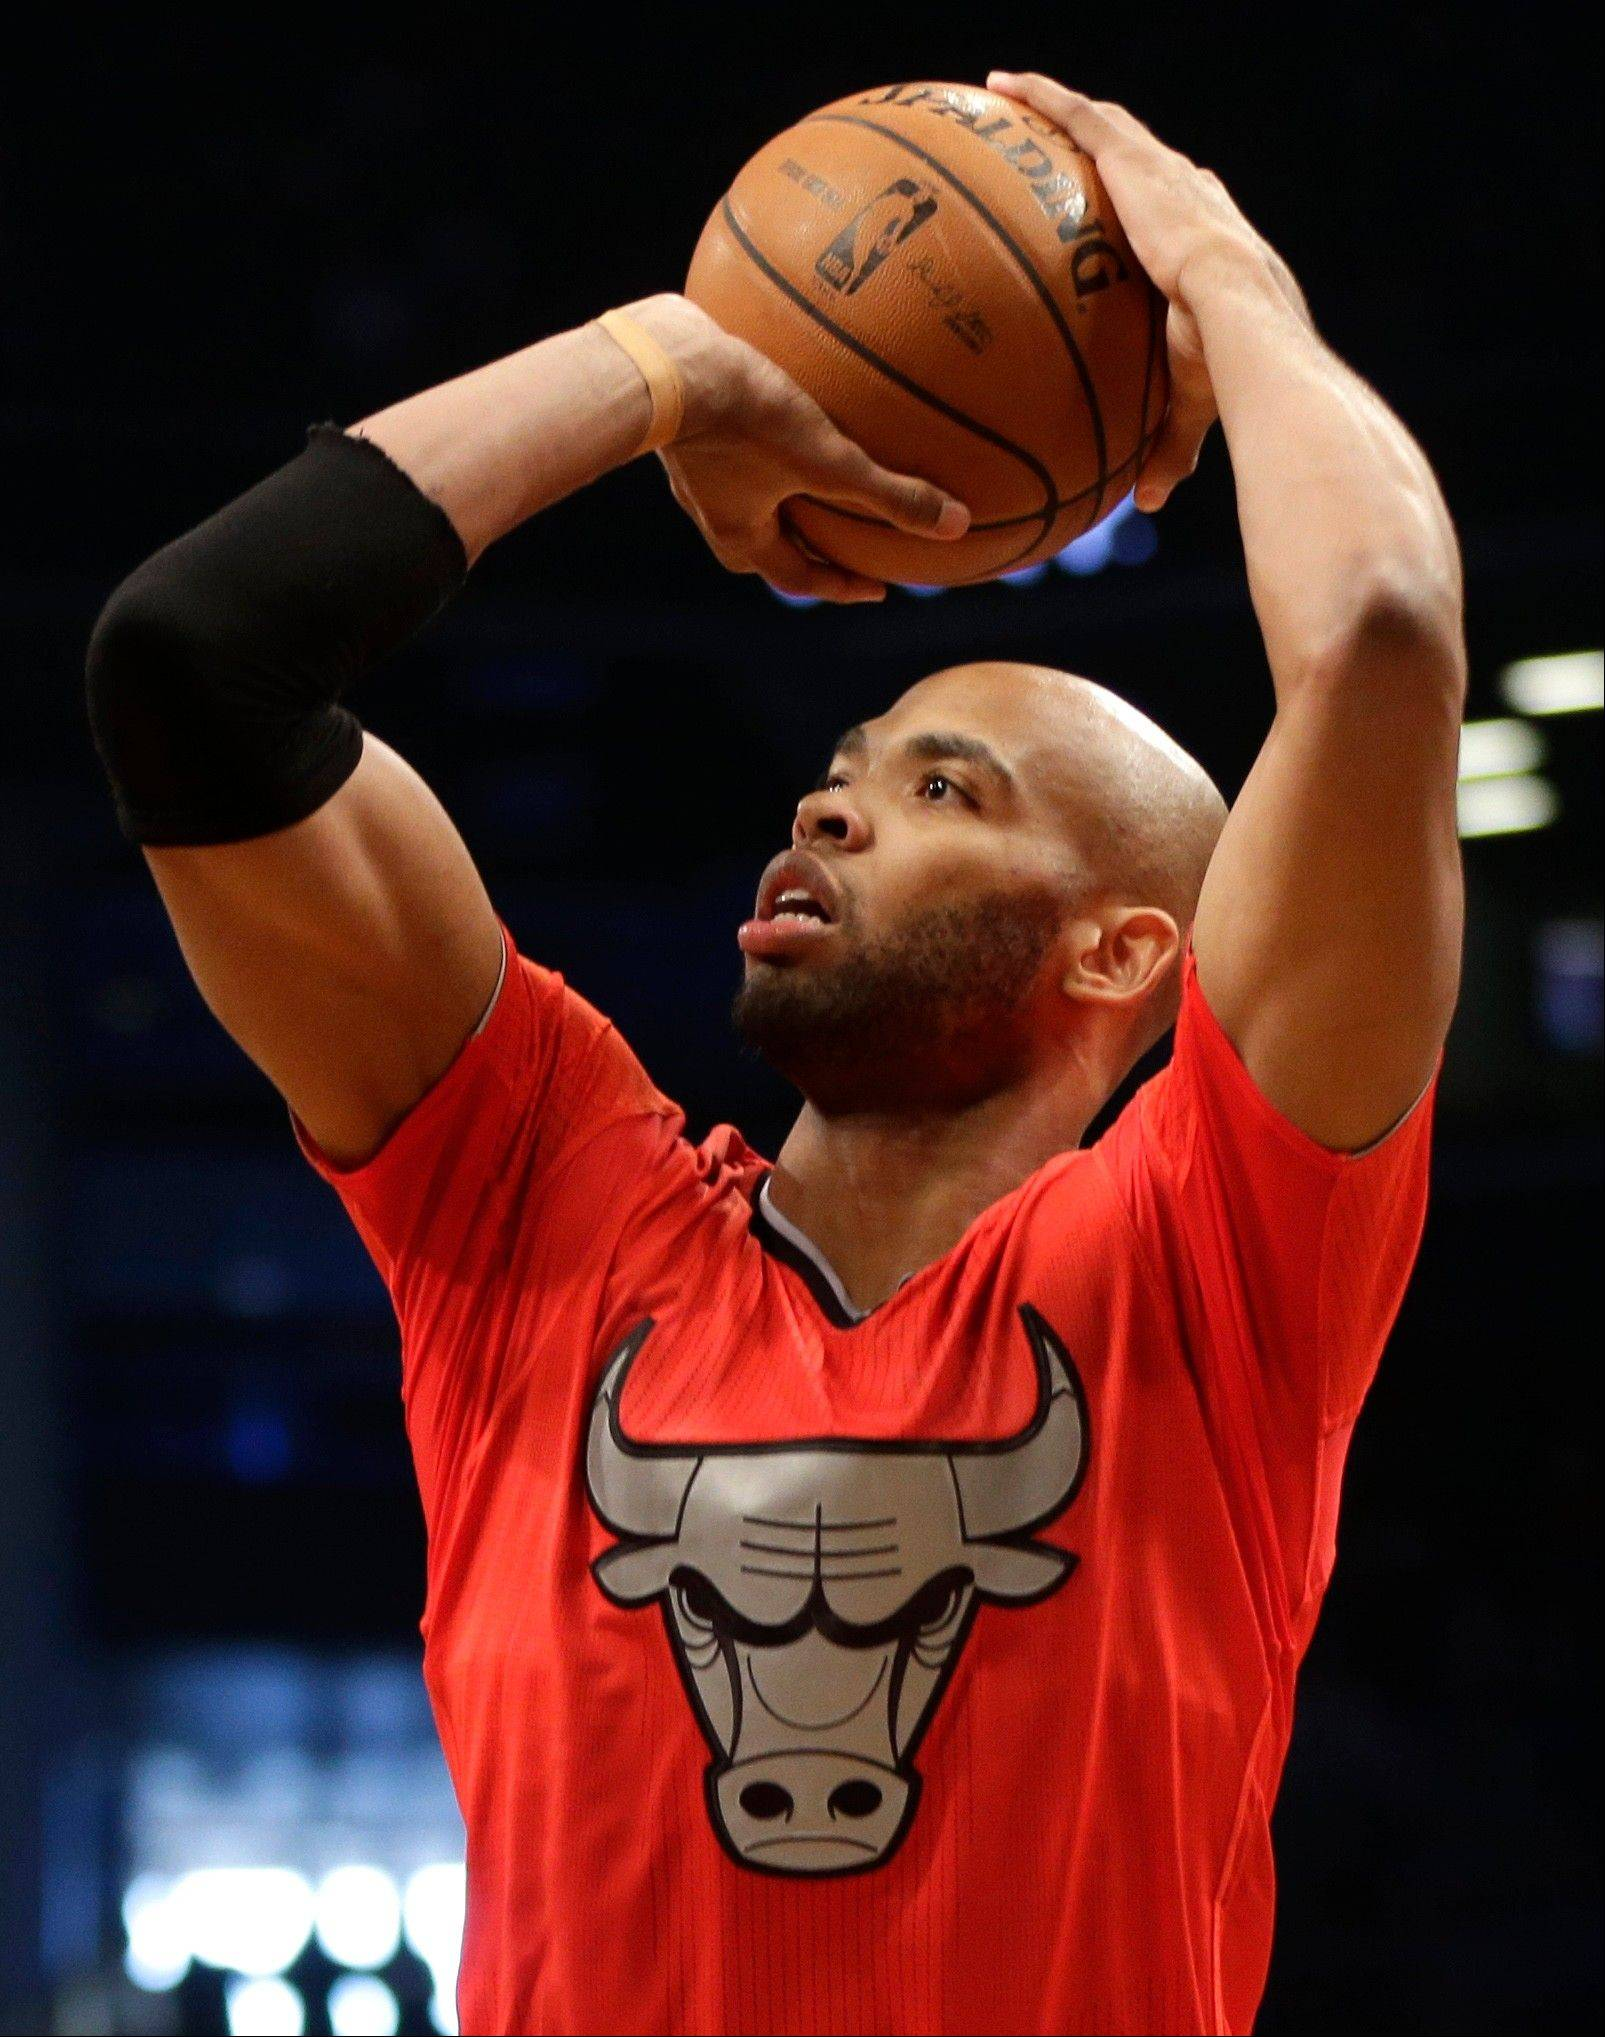 Chicago Bulls� Taj Gibson lines up a shot during the first half of the NBA basketball game against the Brooklyn Nets at the Barclays Center Wednesday in New York.